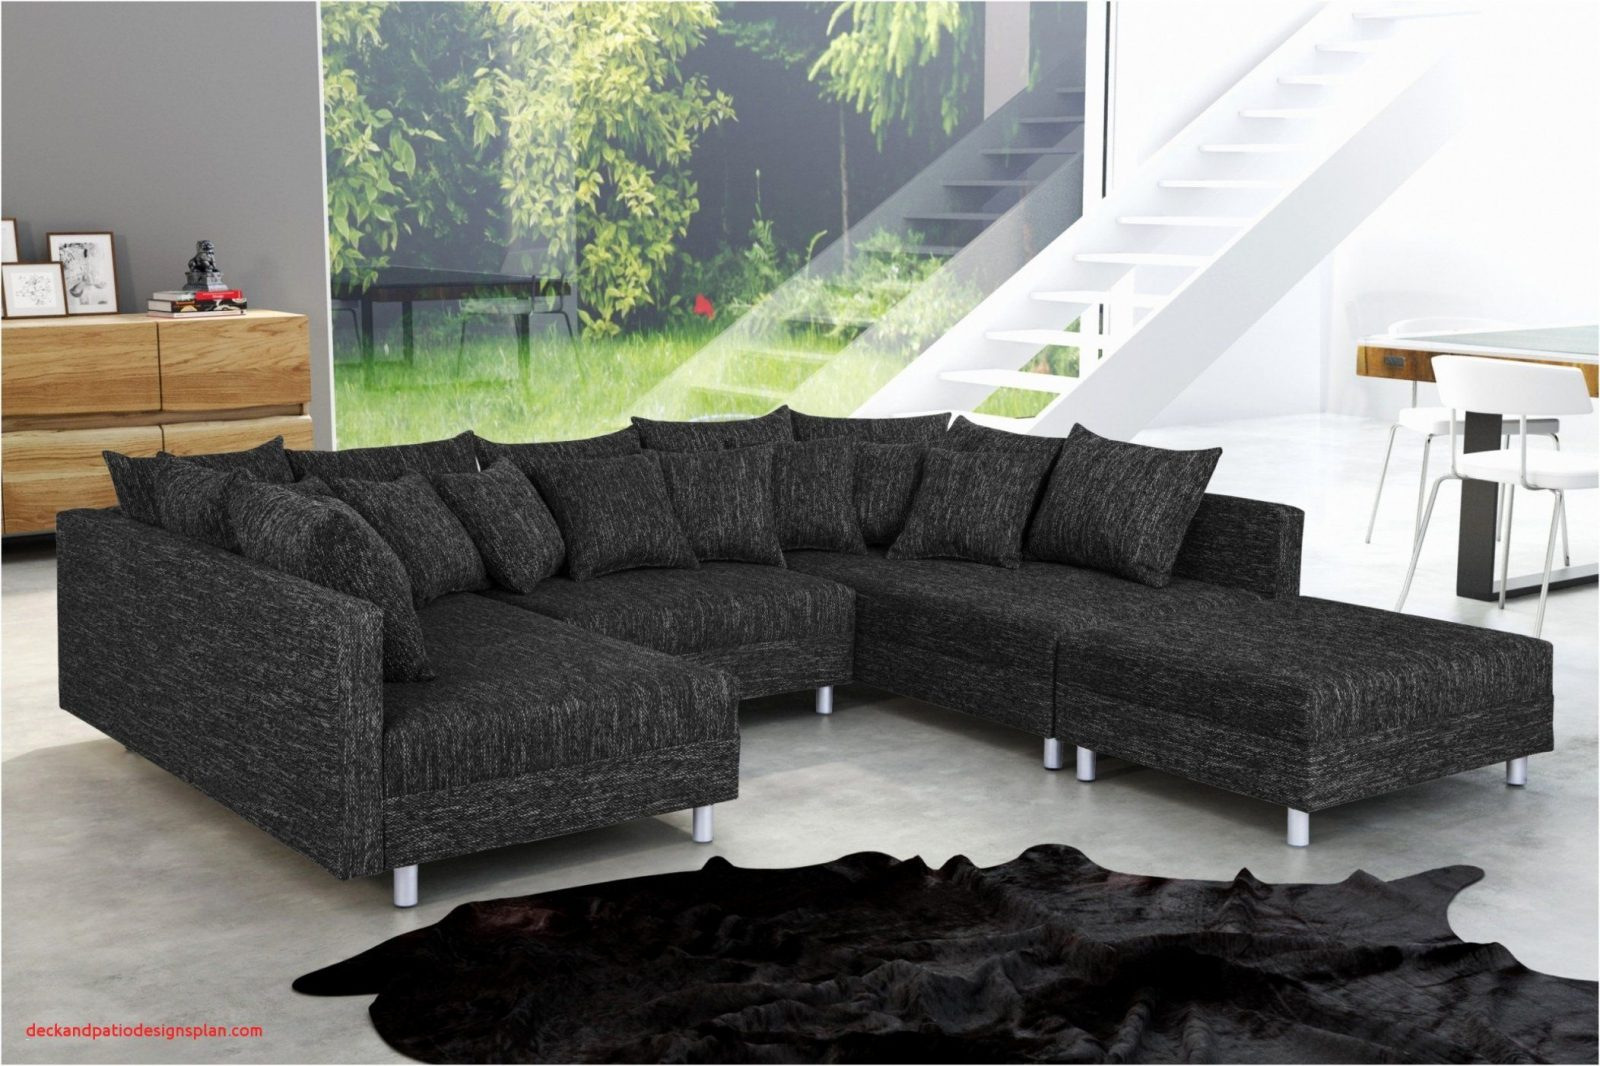 Huge Sofa Awesome Big Sofa Kunstleder Mobel Boss Couch Massage von Big Sofa Möbel Boss Photo